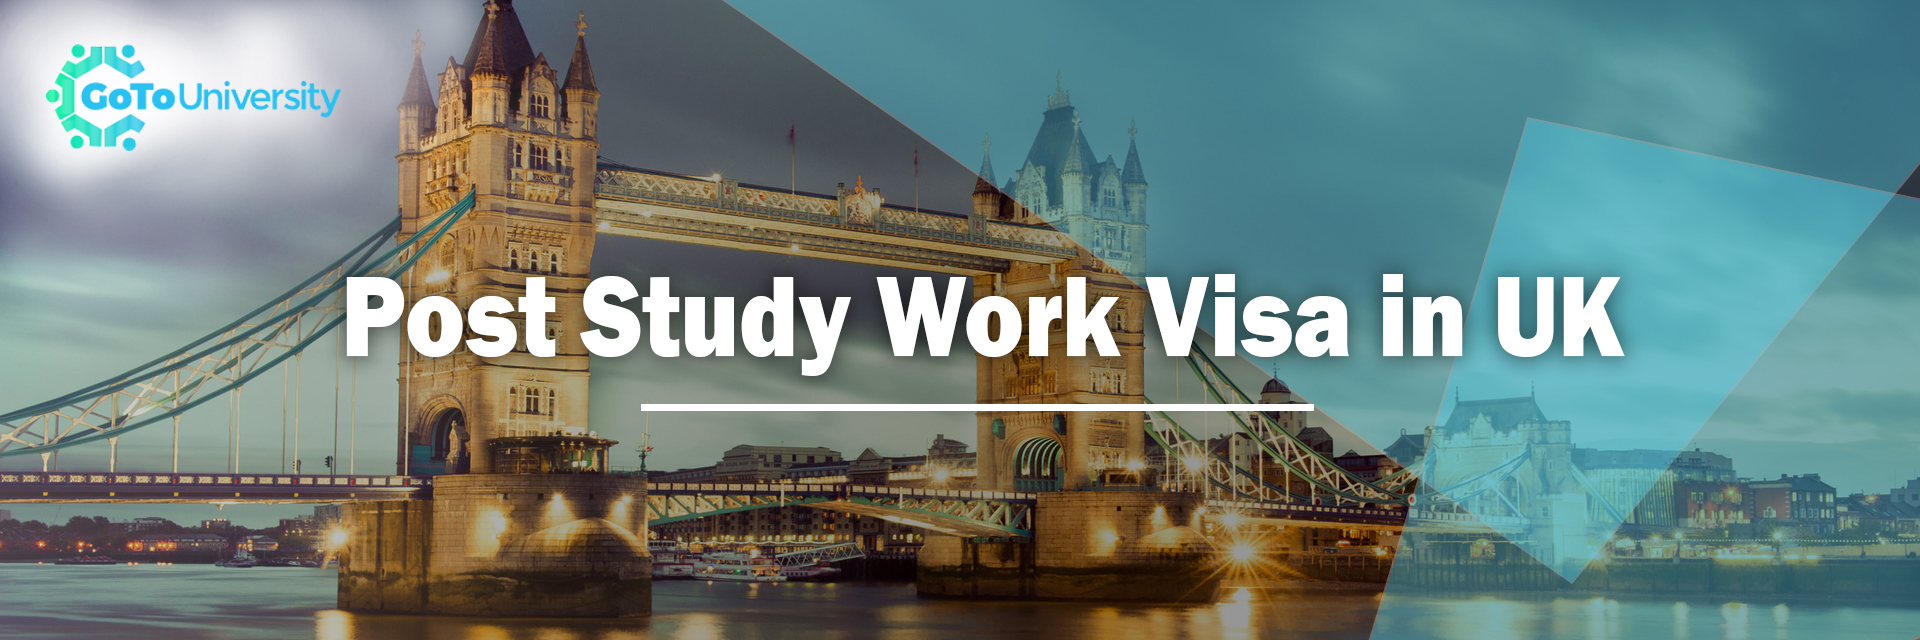 Post Study Work Visa UK